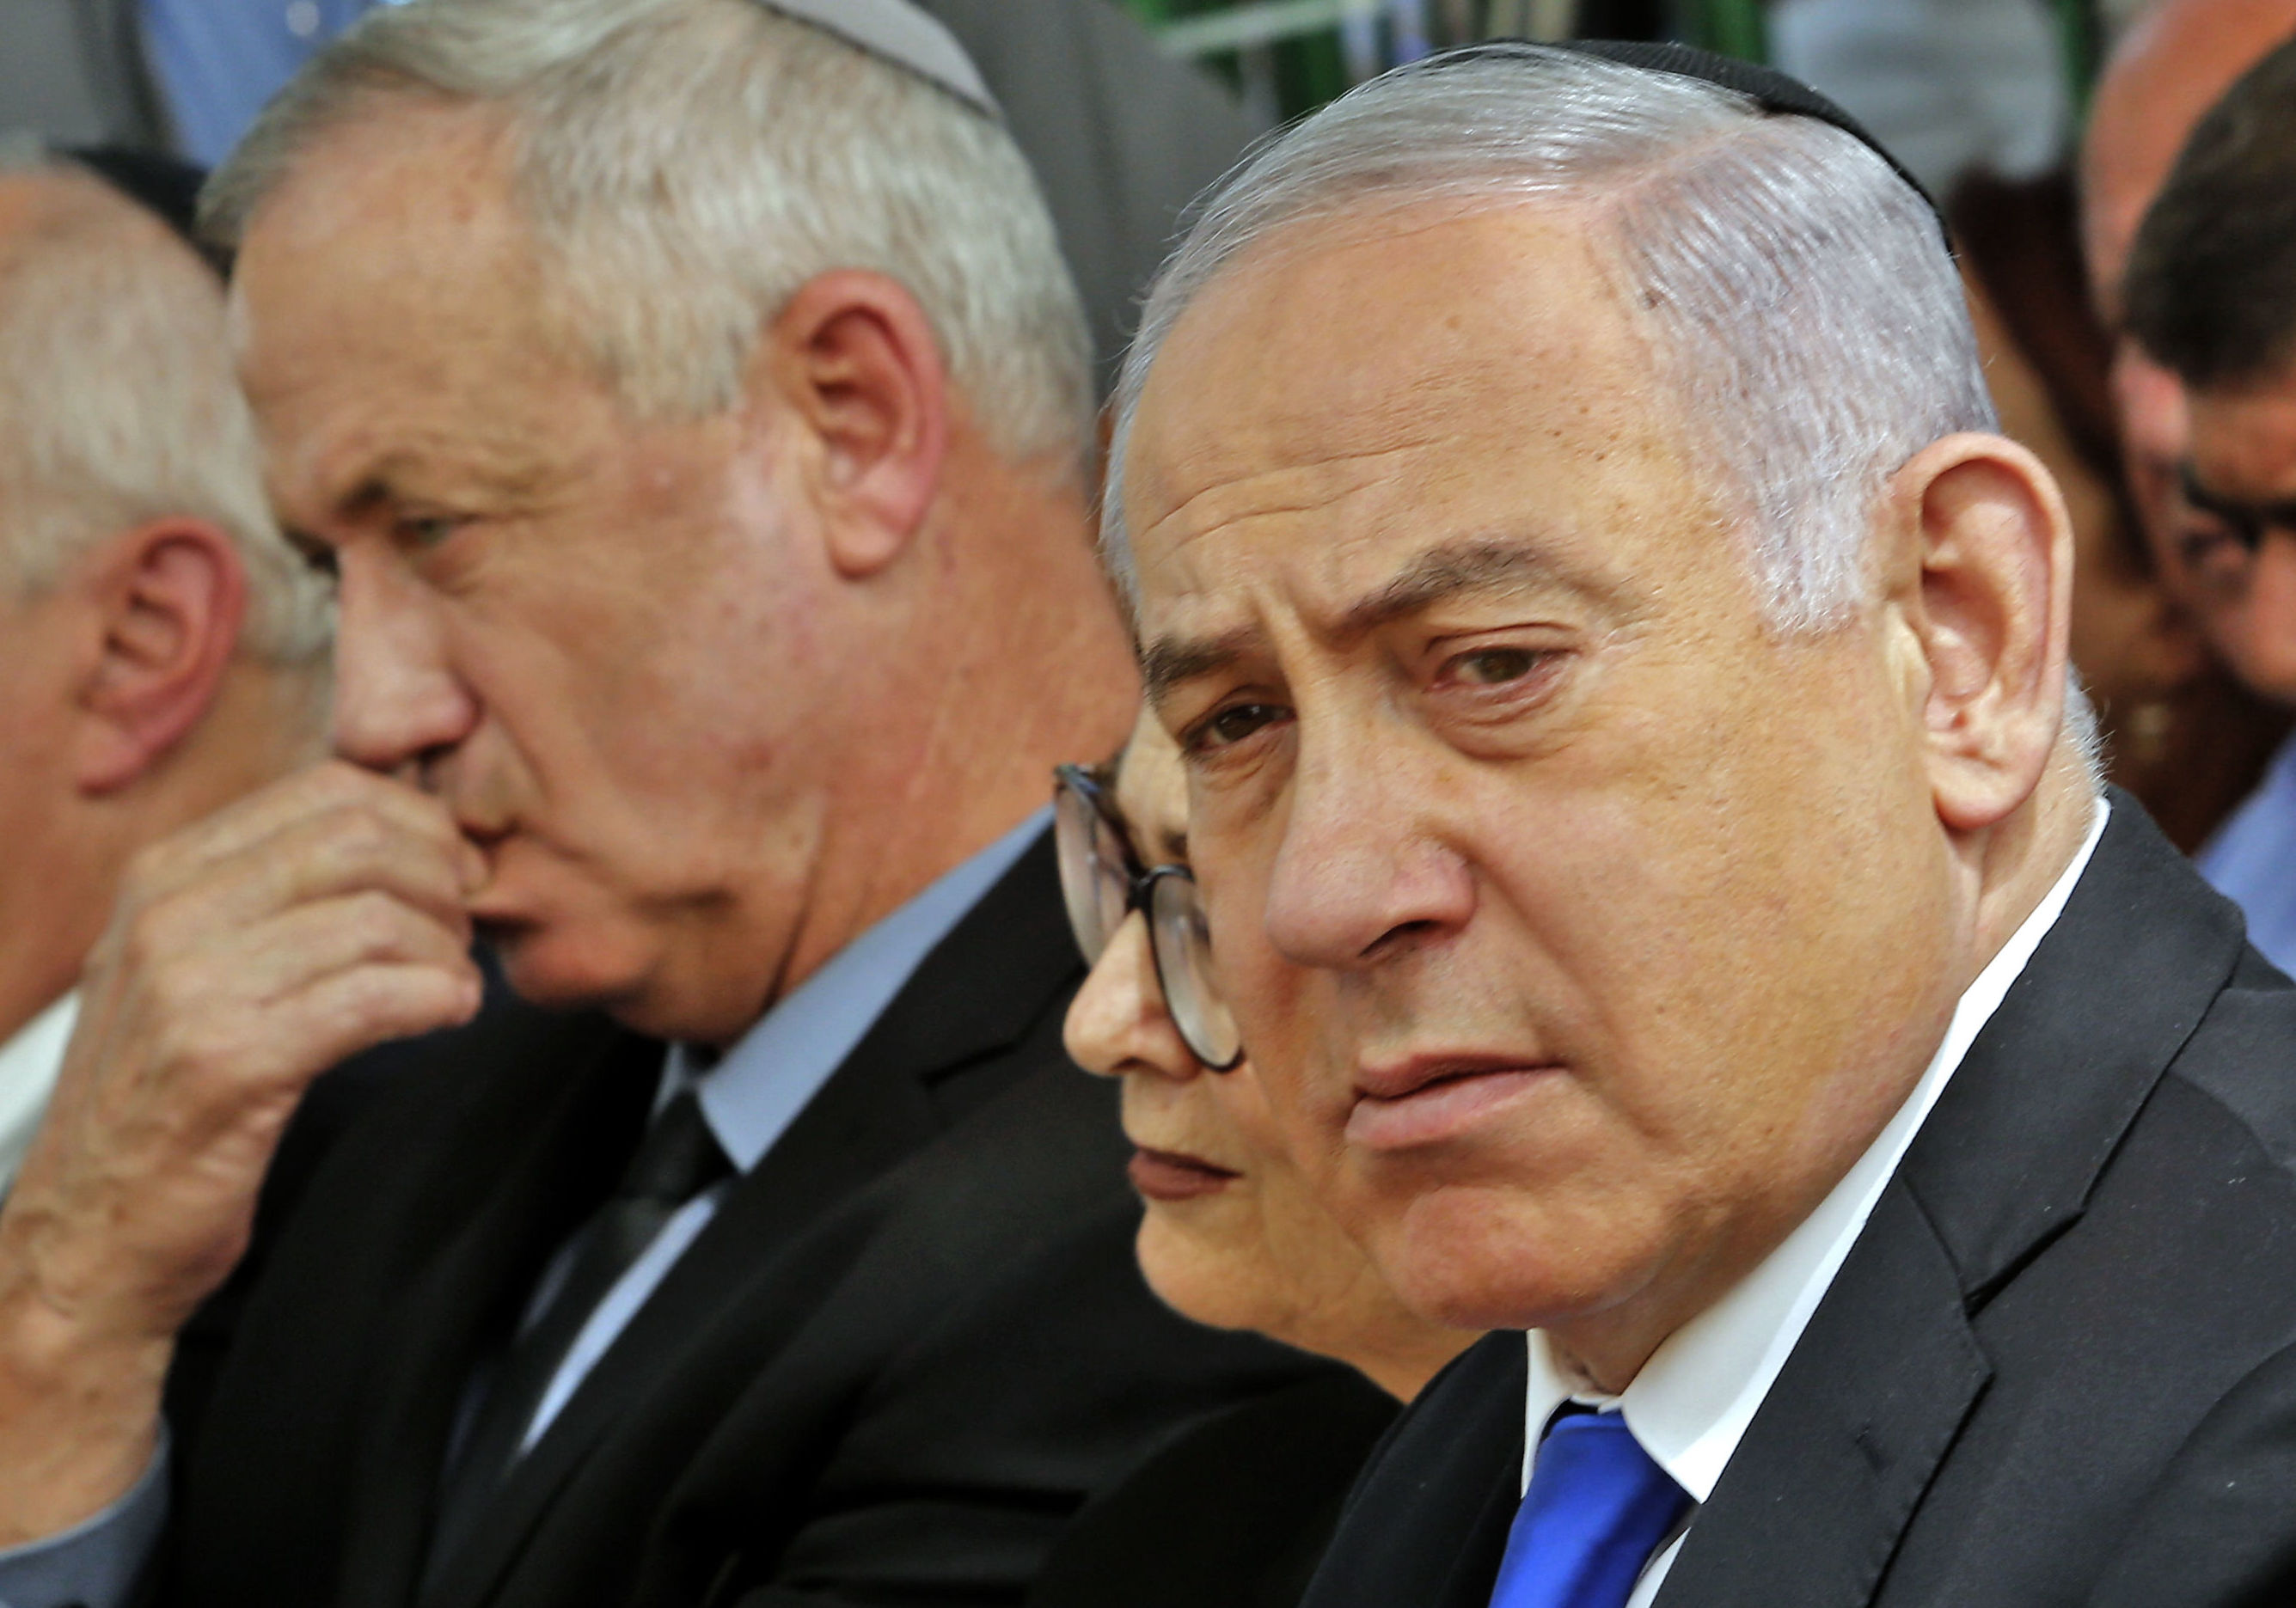 Israeli Prime Minister Benjamin Netanyahu (R), Israeli president of the Supreme Court  Esther Hayut (C) and Benny Gantz (L), leader of Blue and White party, attend a memorial ceremony for late Israeli president Shimon Peres, at Mount Herzl in Jerusalem on September 19, 2019